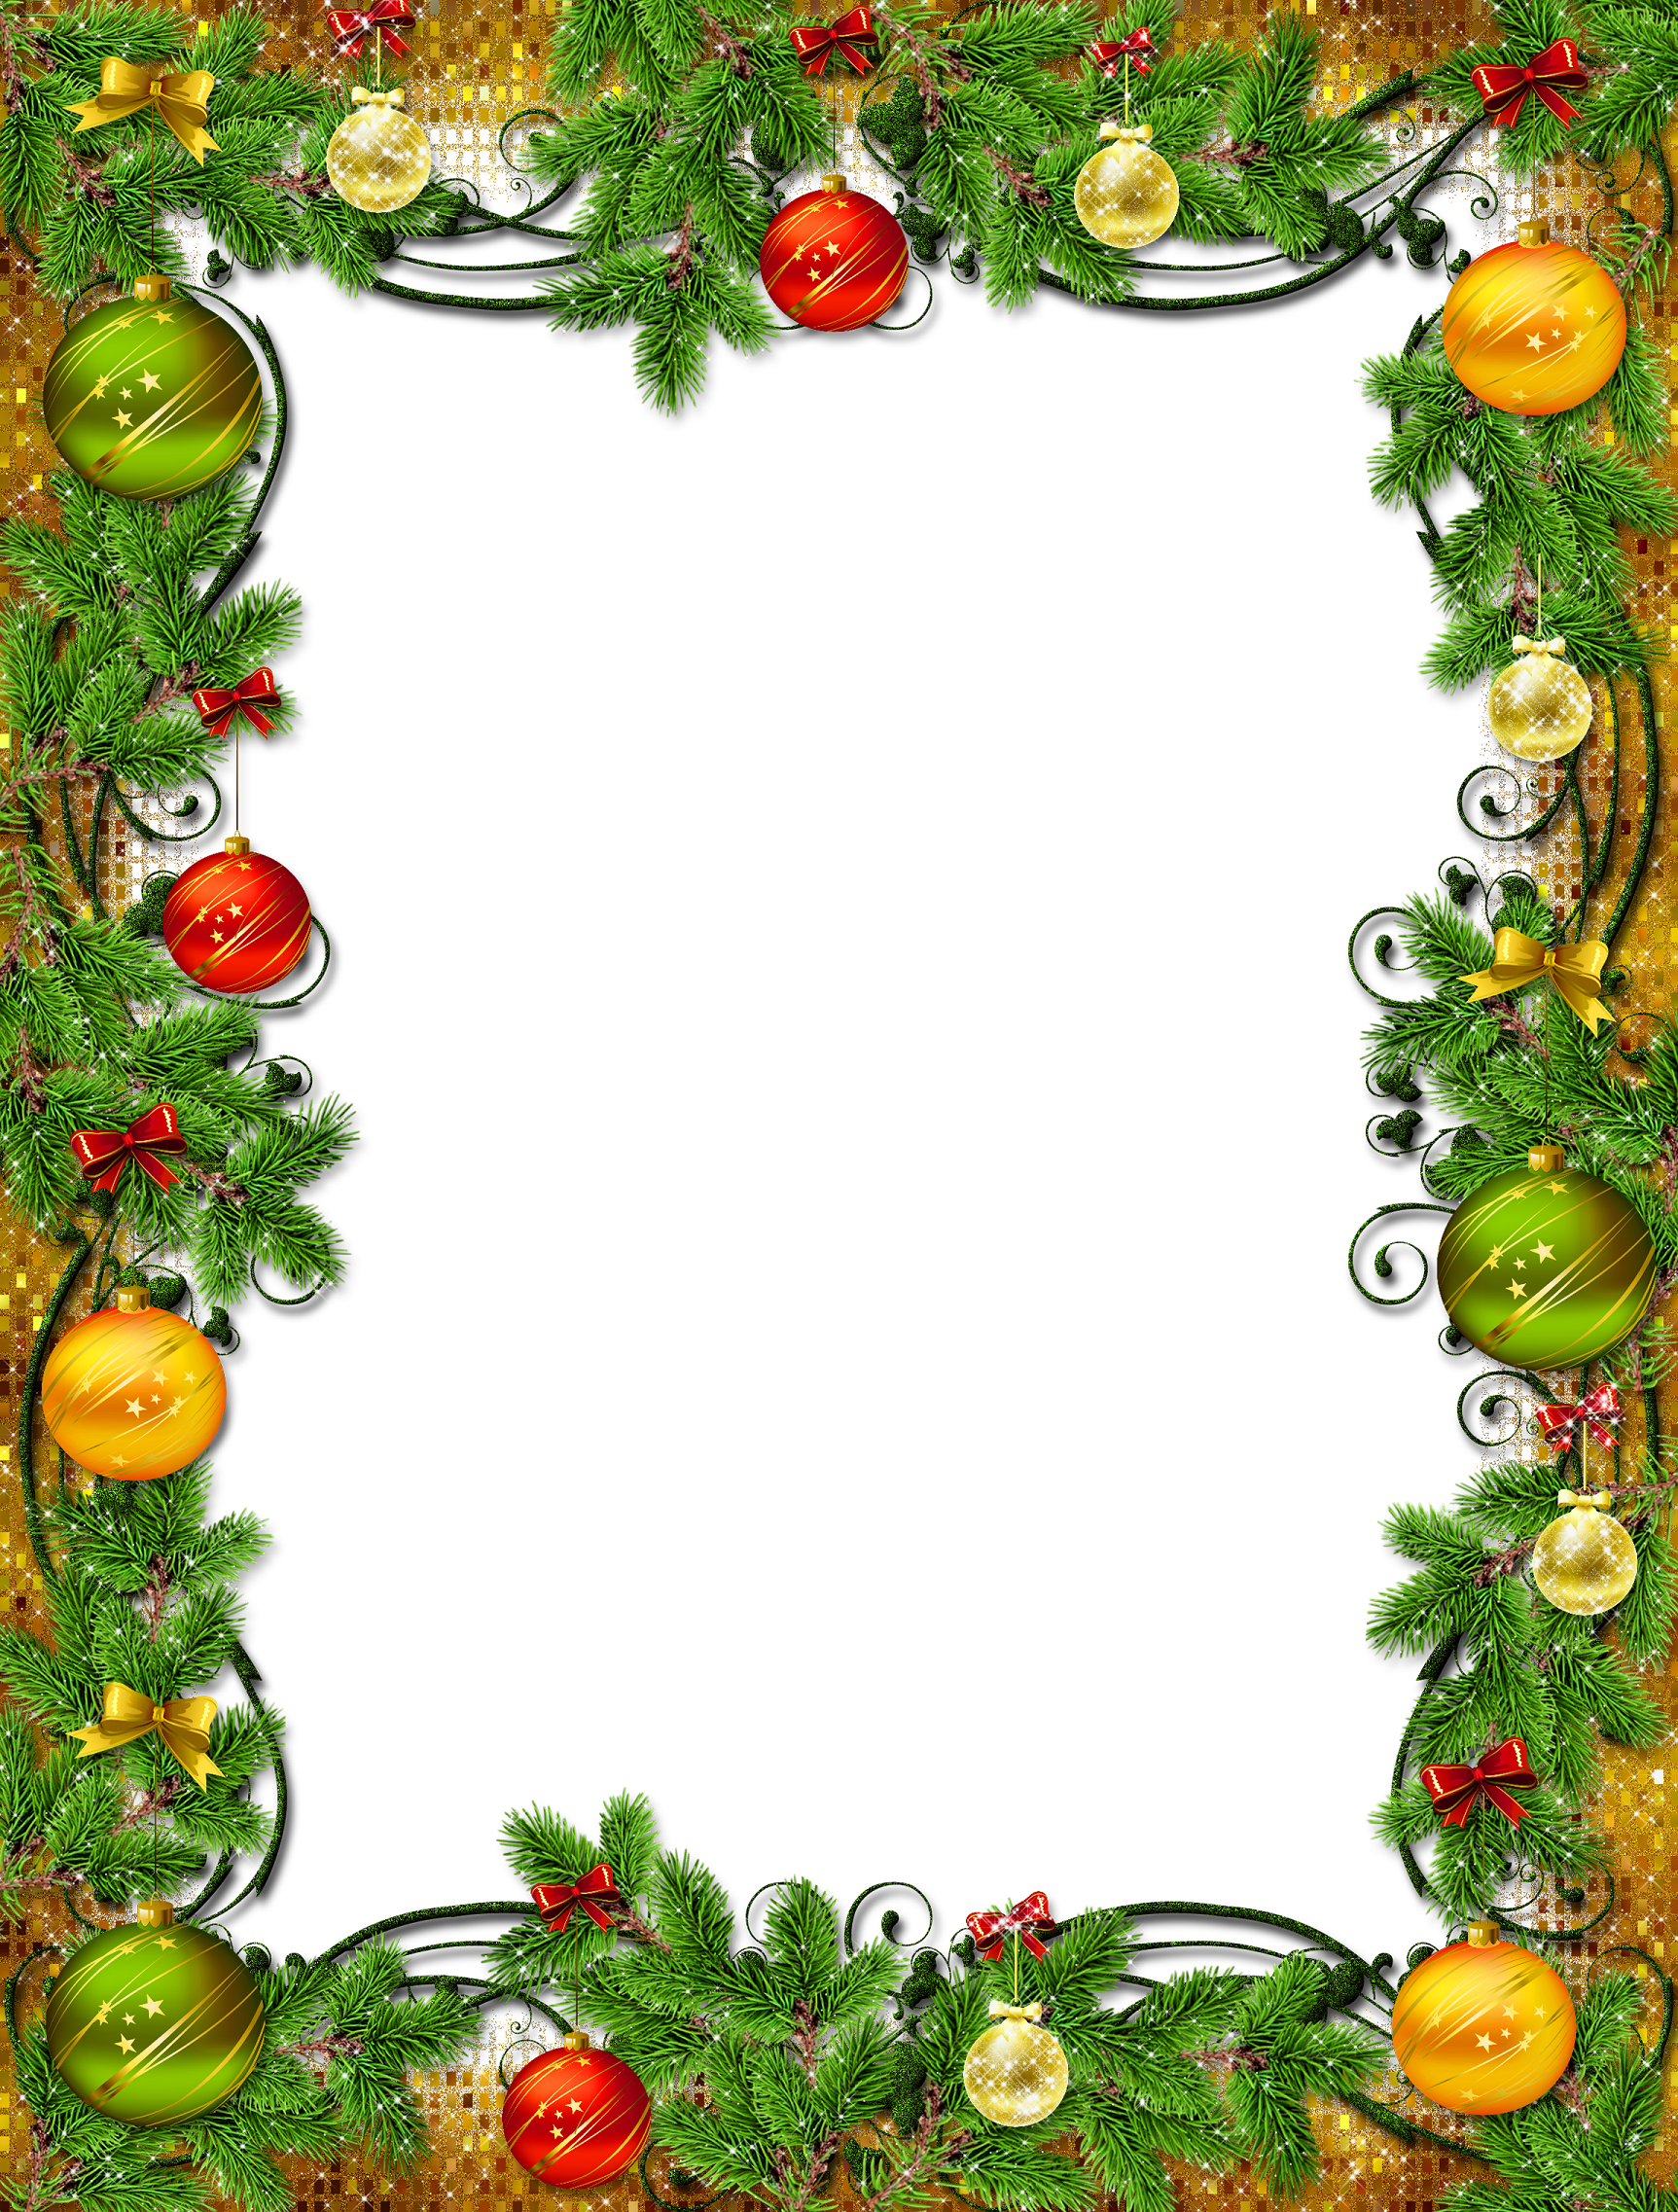 christmas frame with ornaments